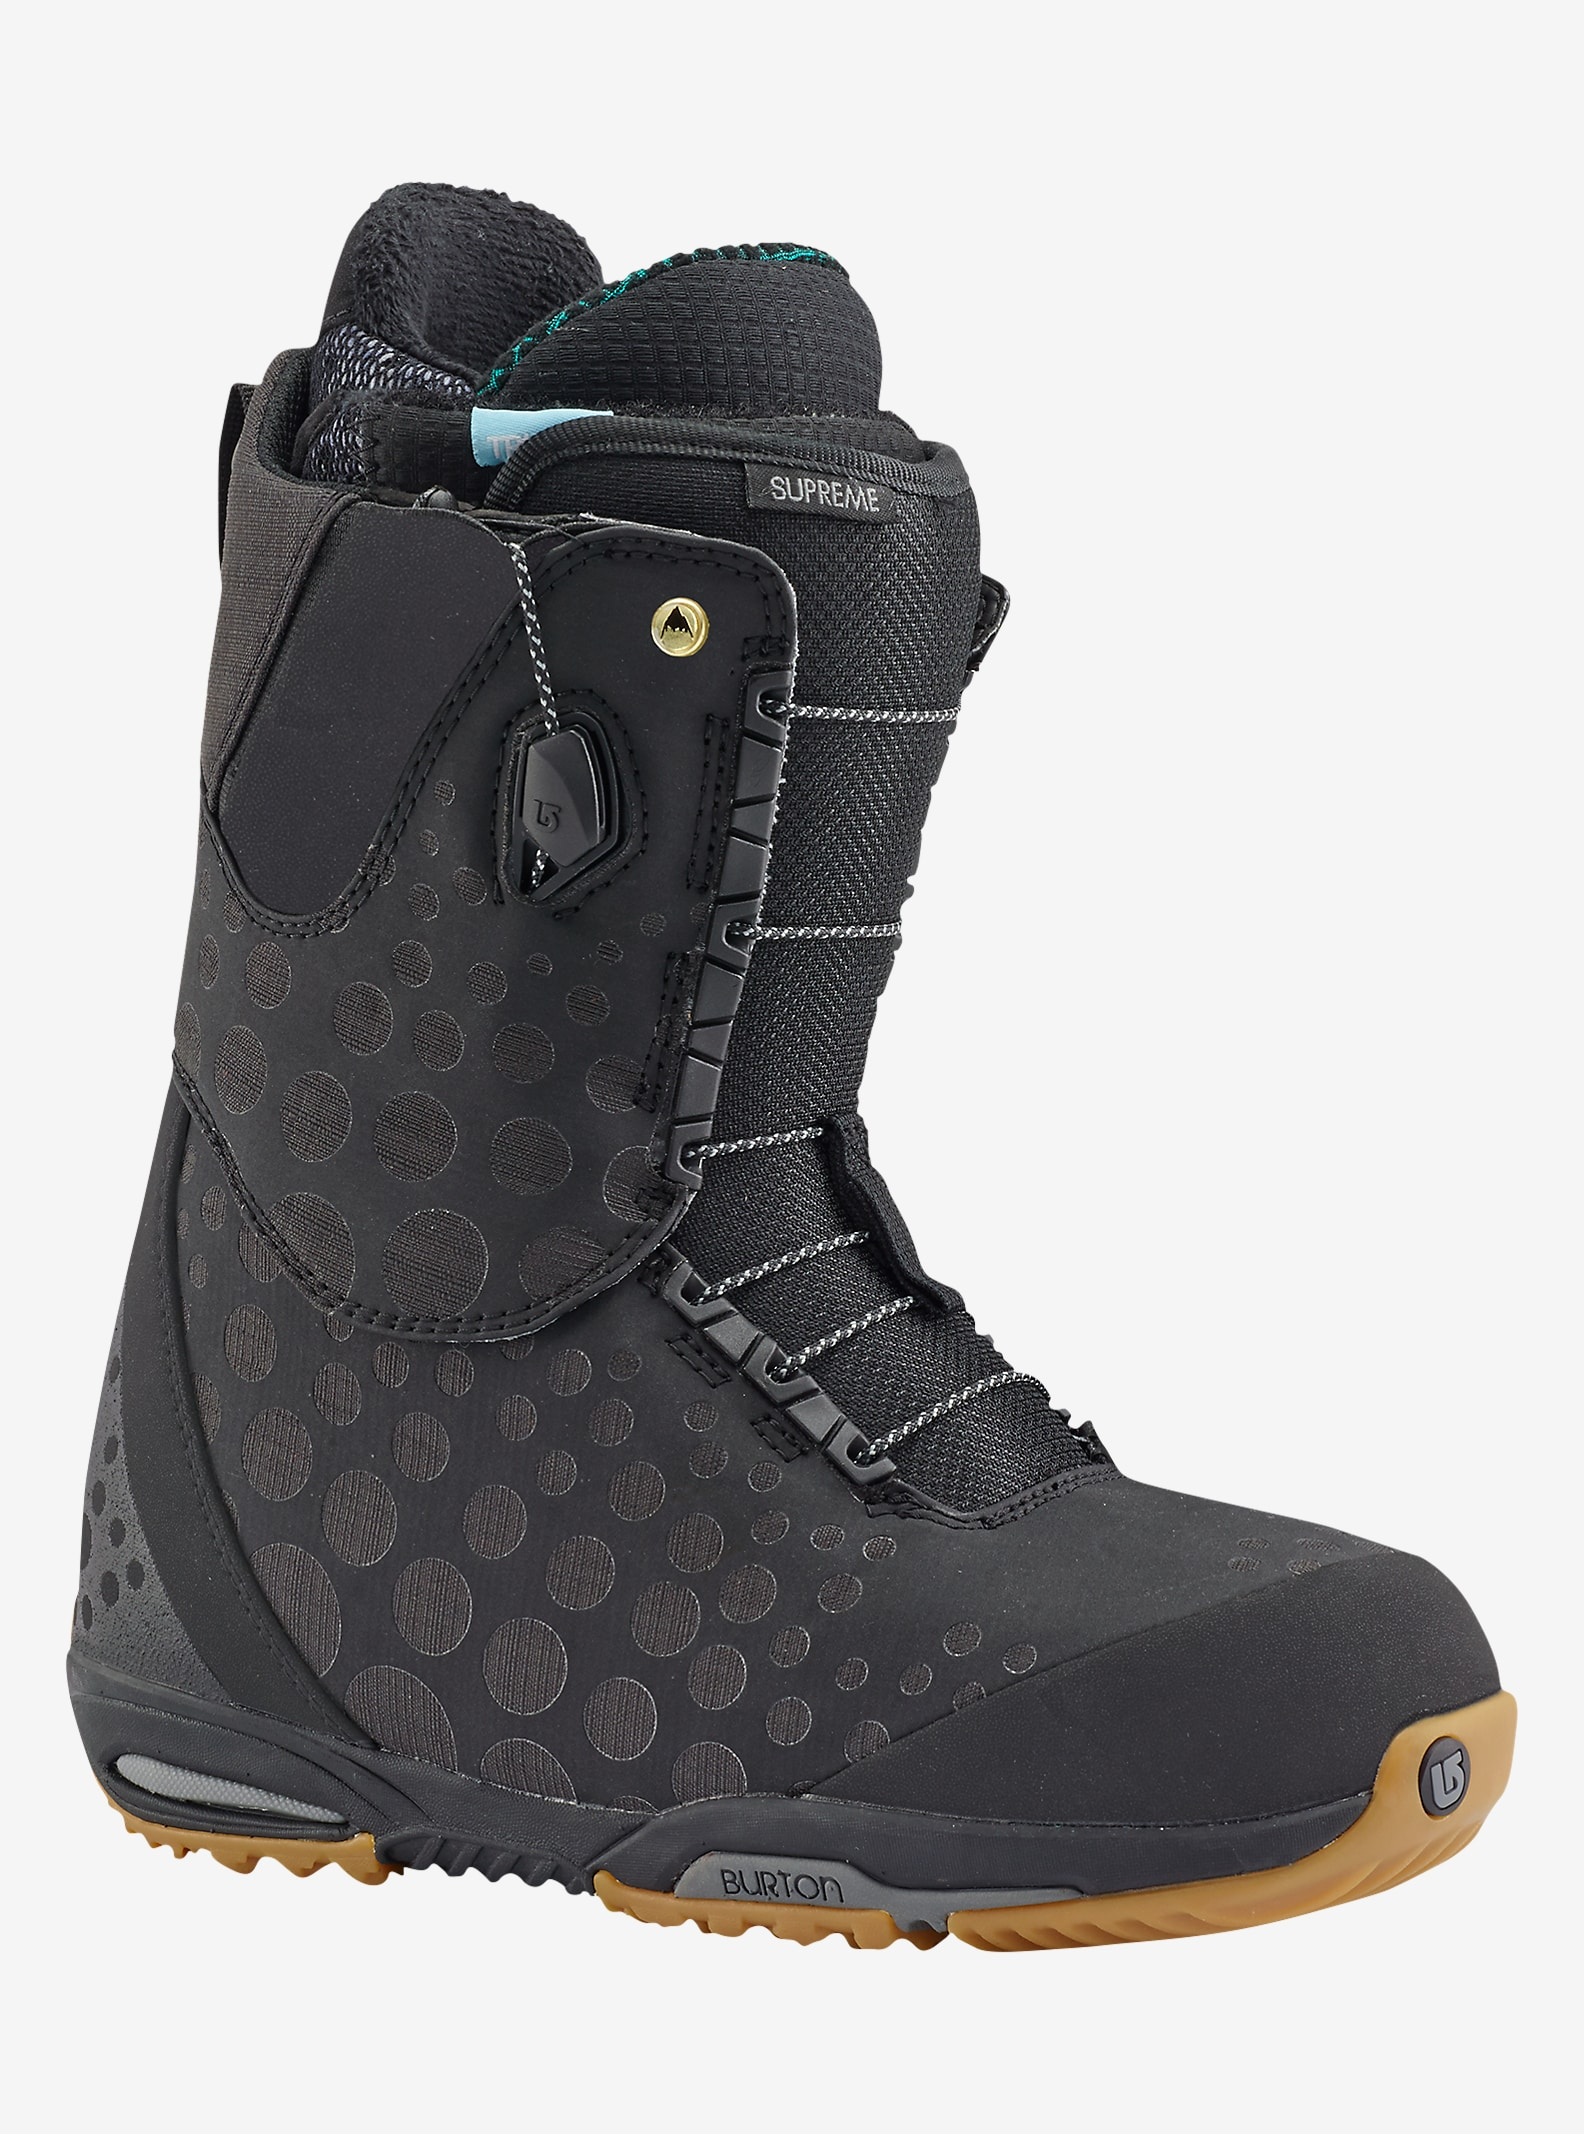 Burton Supreme Snowboard Boot shown in Black